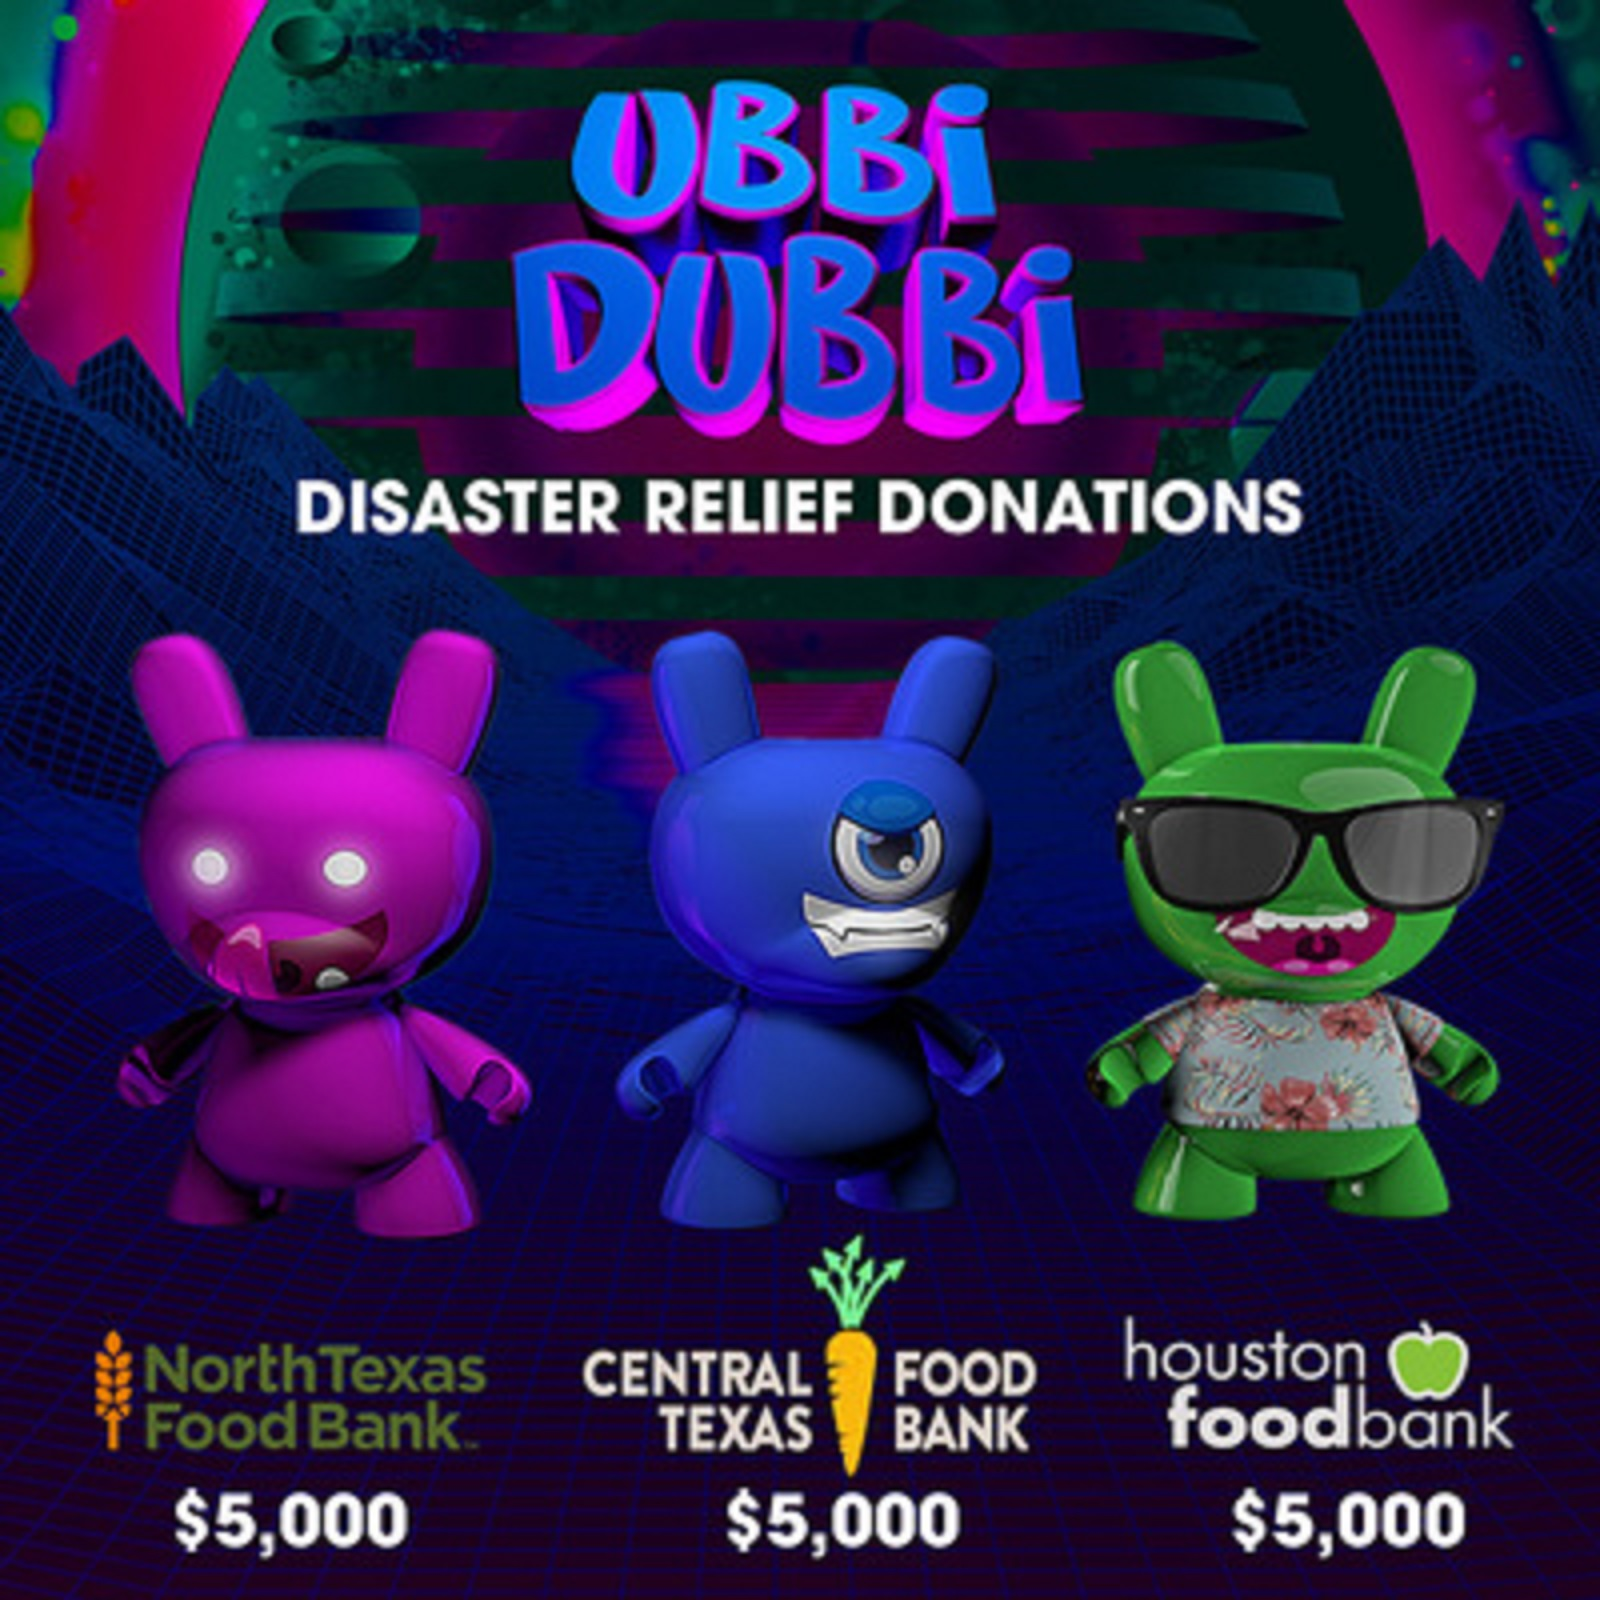 Ubbi Dubbi Festival Producers, Disco Donnie Presents,  Donate $15,000 To Texas Food Banks in Wake of Winter Storms